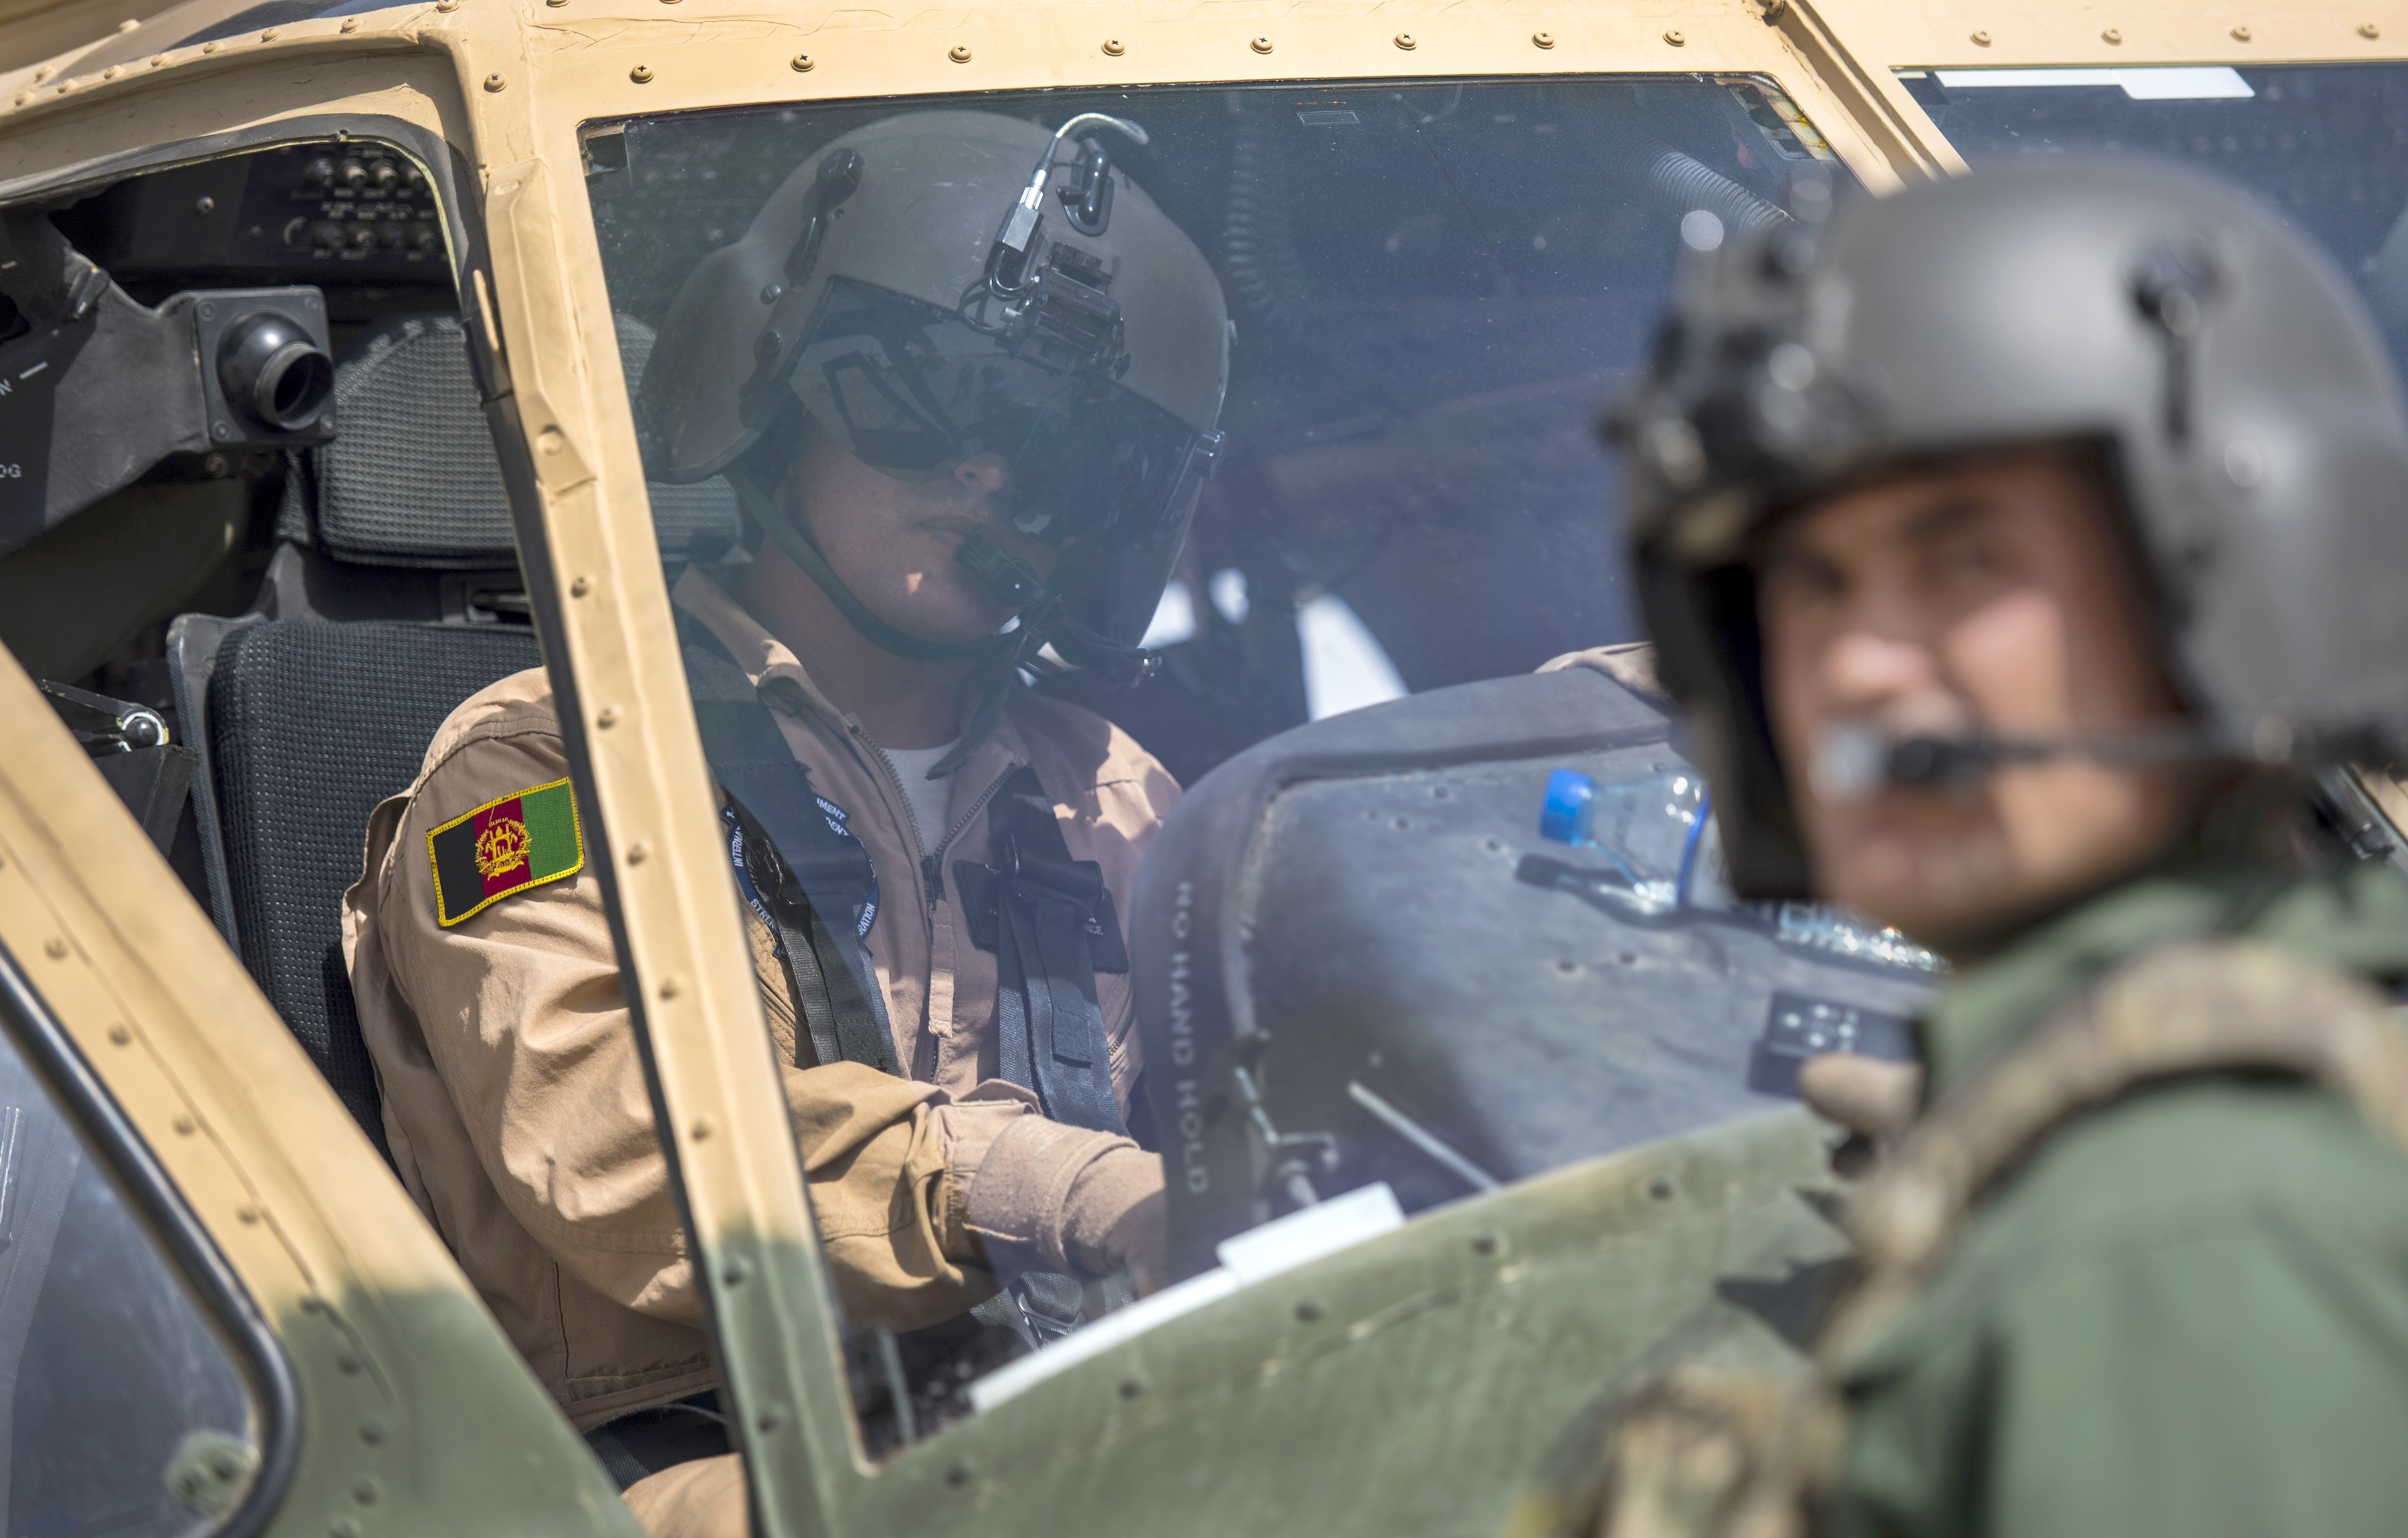 Soldiers see Afghan security forces taking lead with new